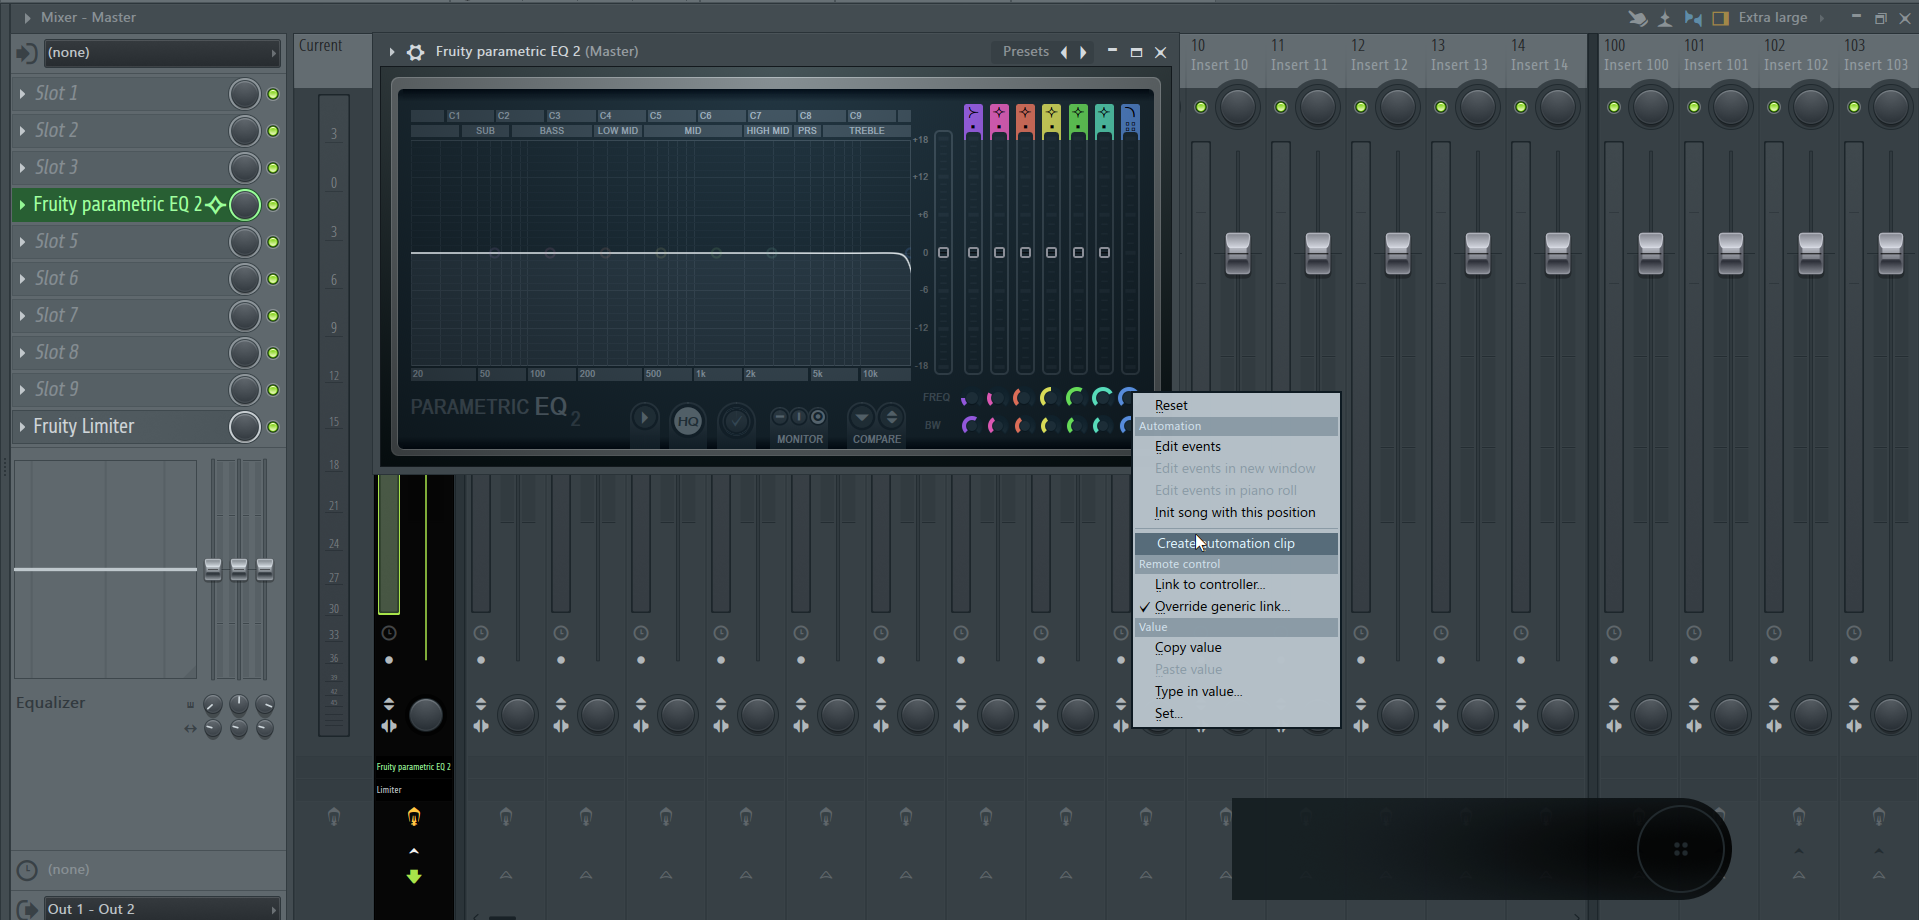 How to Make an Automation Clip in FL Studio_2 - Freq Automation